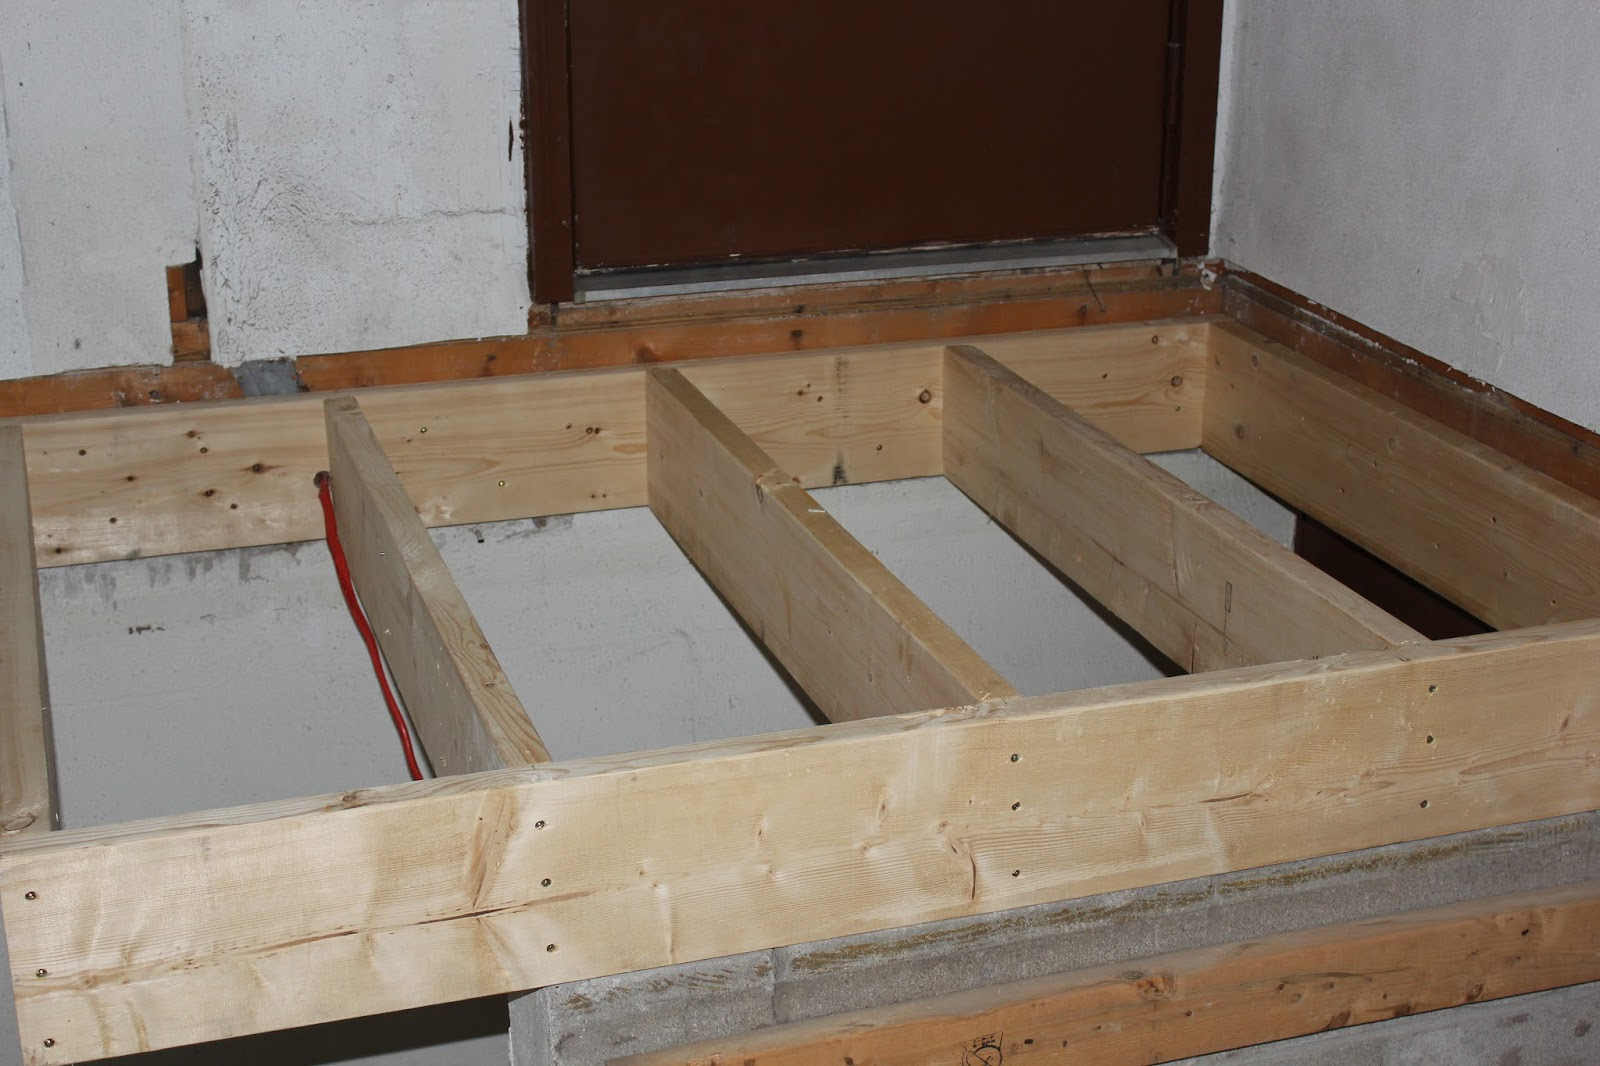 The Entire Platform Was Made Of 2x6 Joist And Although Sufficient For This  Short Span It Was My Choice To Use 2x8 Joist To Make The Landing Closer To  The ...